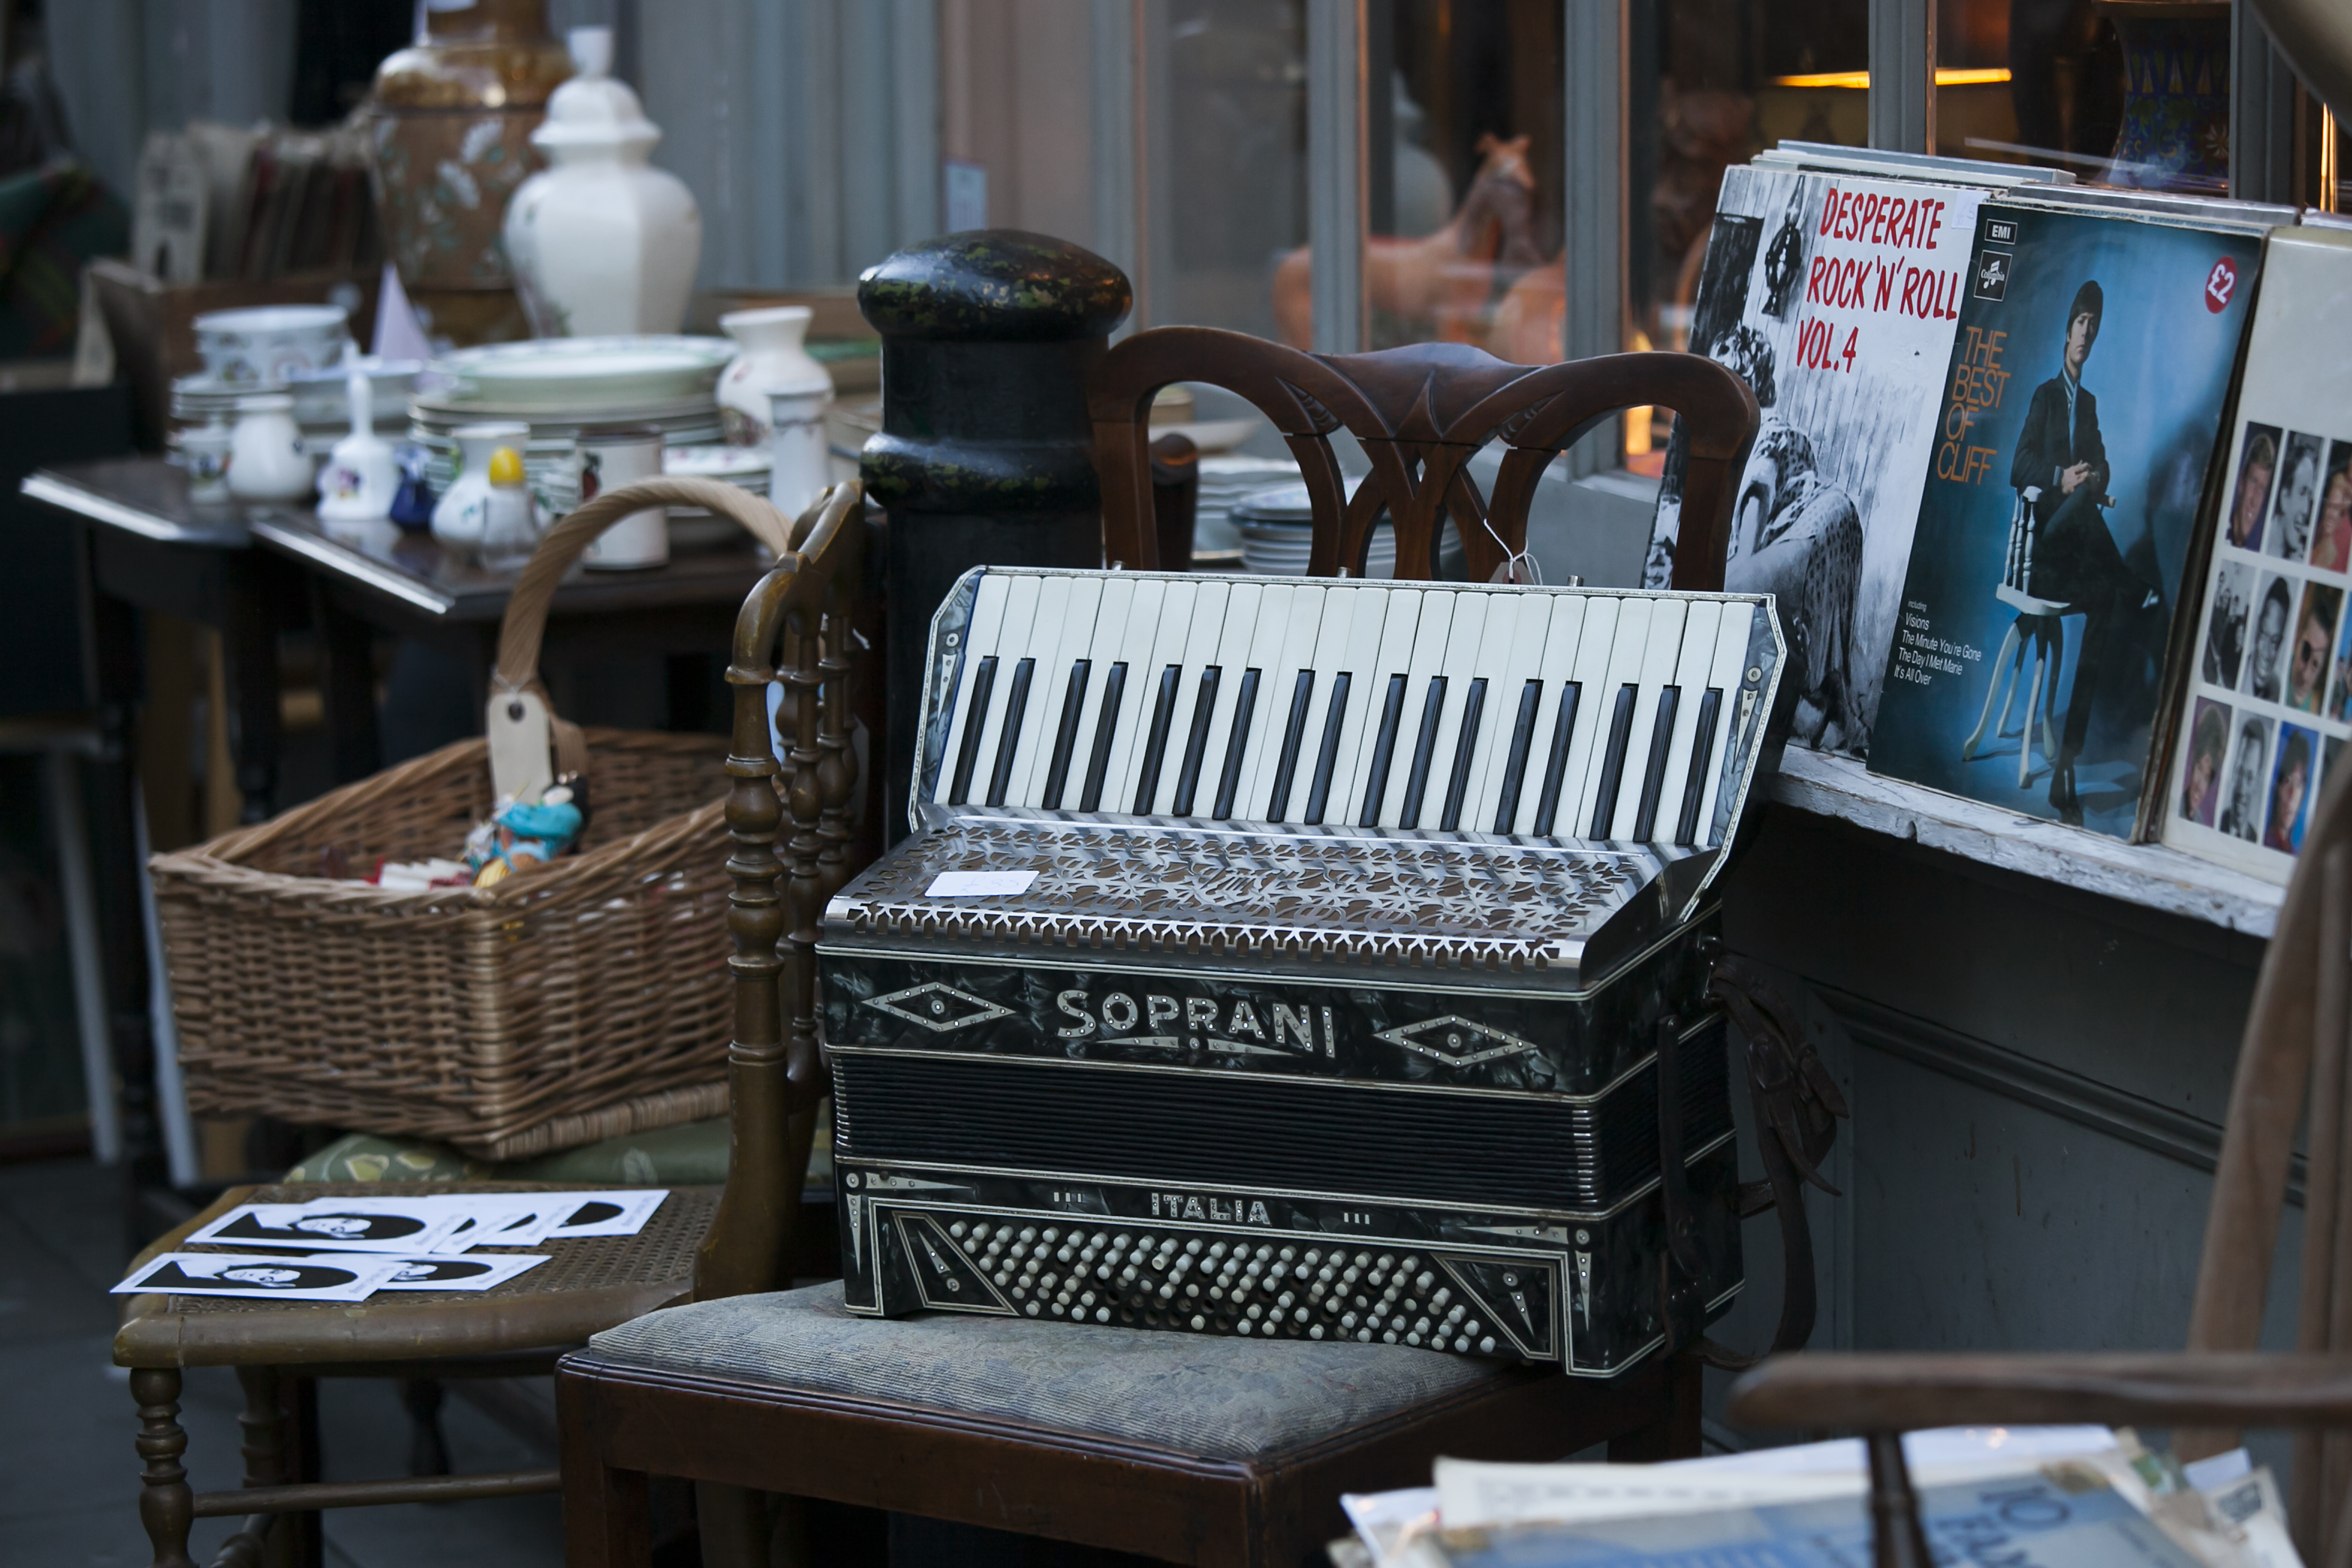 Photo of a setting in a flea market. There's an accordion on a chair in the foreground, surrounded by an old record album, a table, various dishes, and lamps.